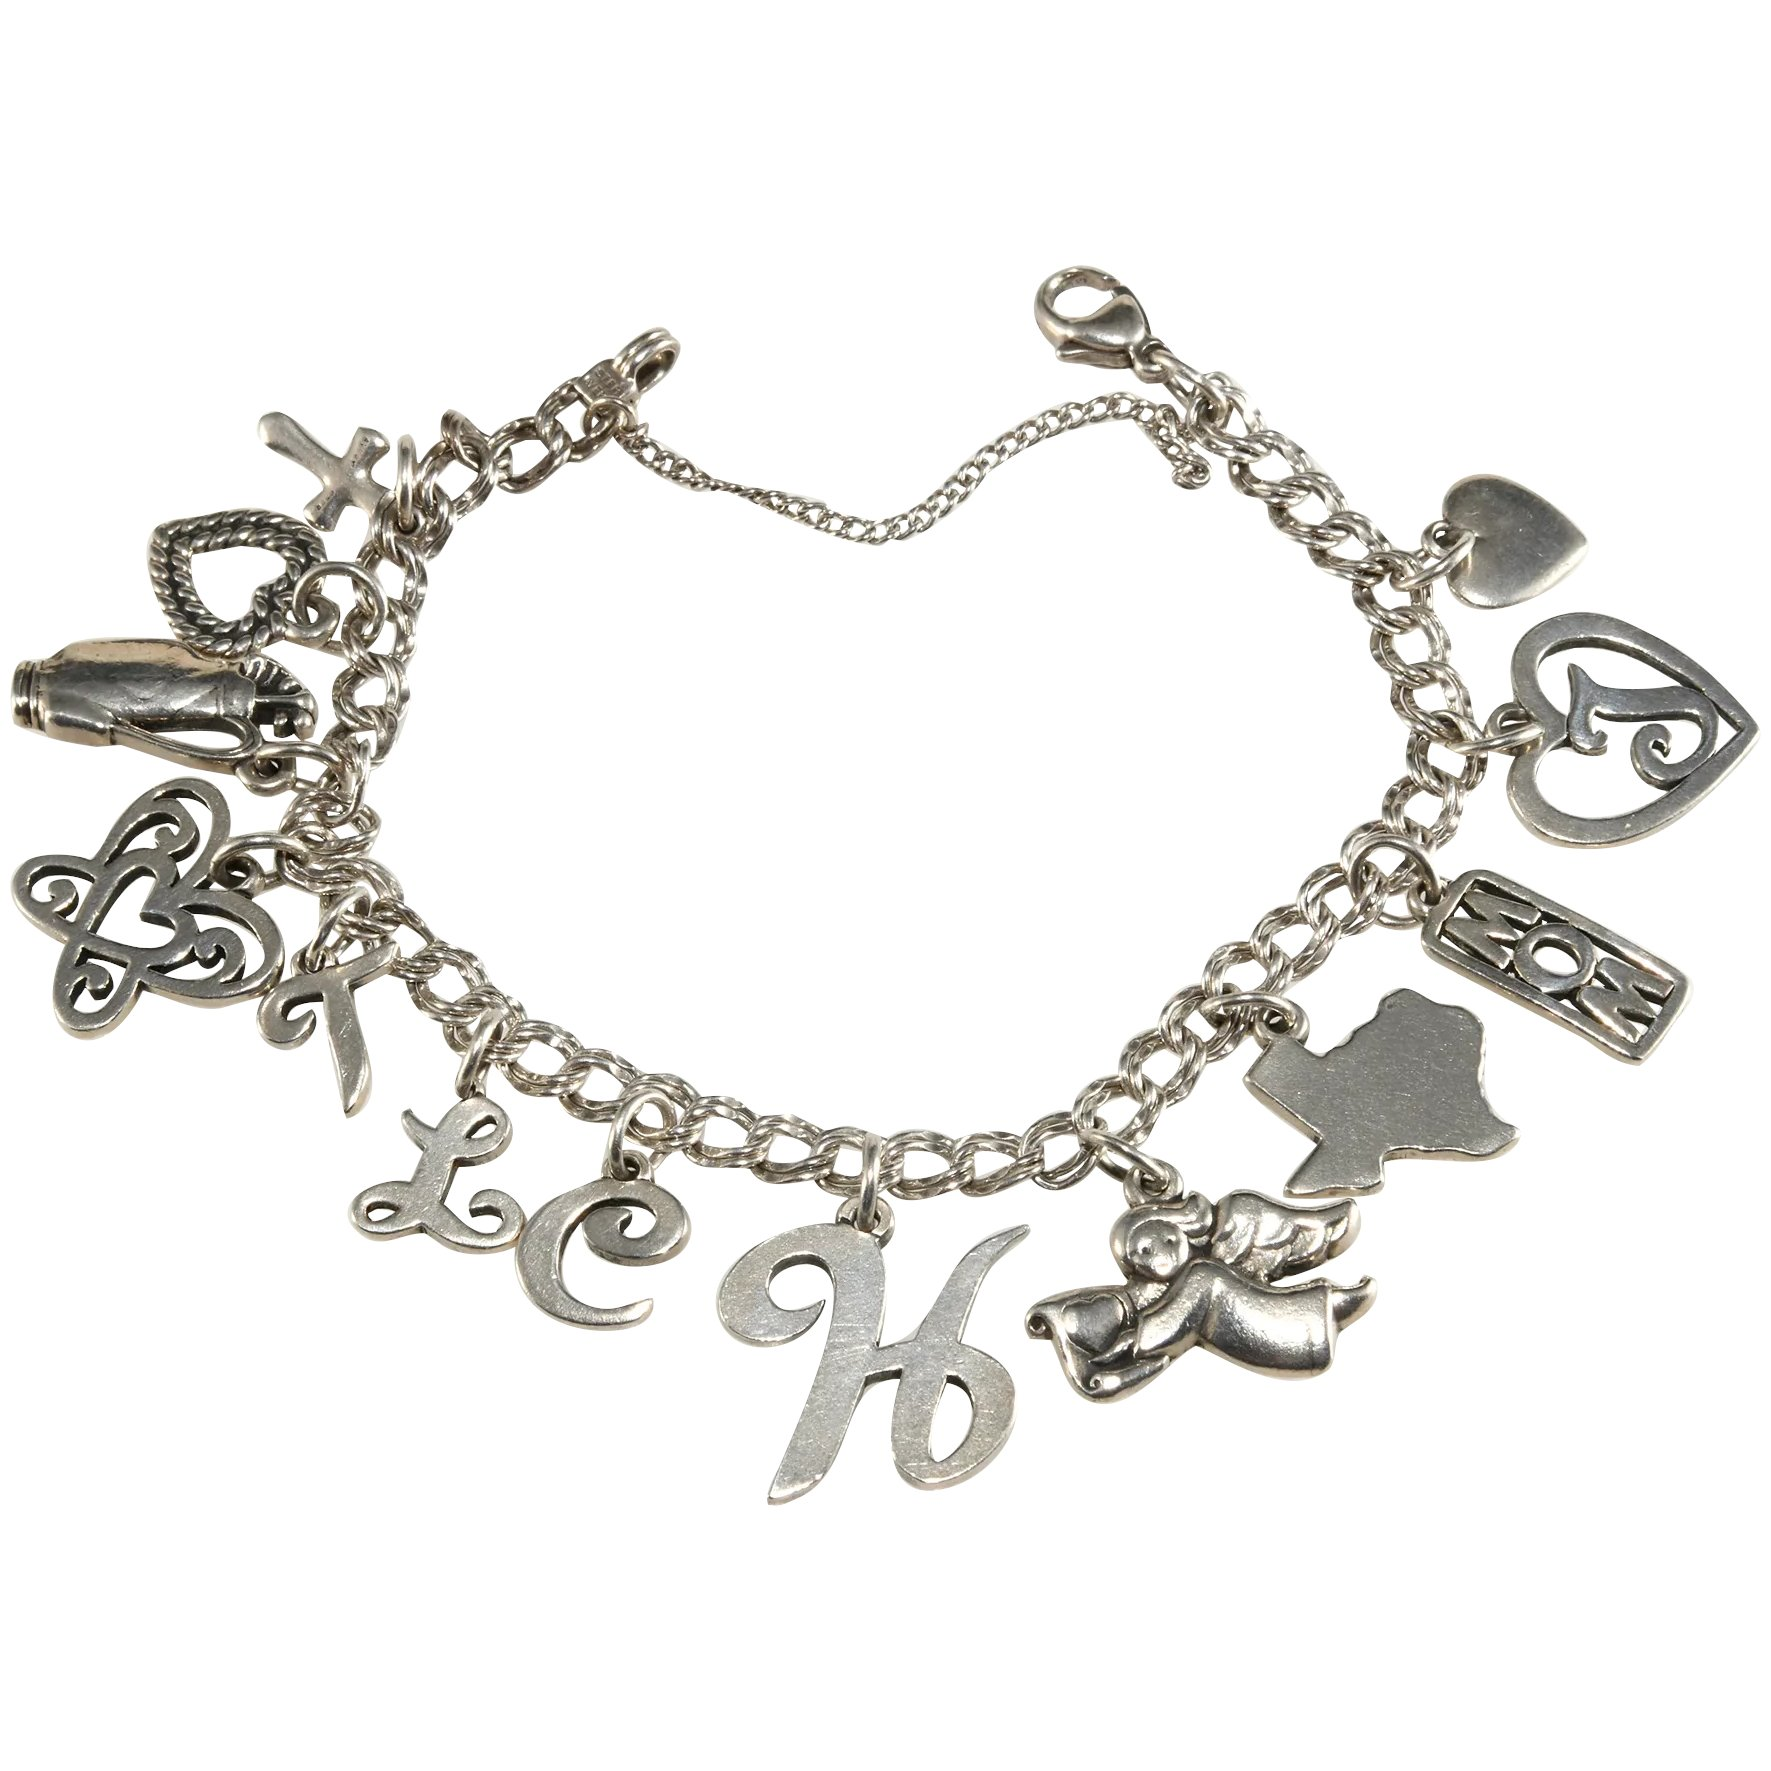 James Avery Charms Bracelet Sterling Silver Texas Mom Golf Letters Butterfly Hearts Angel